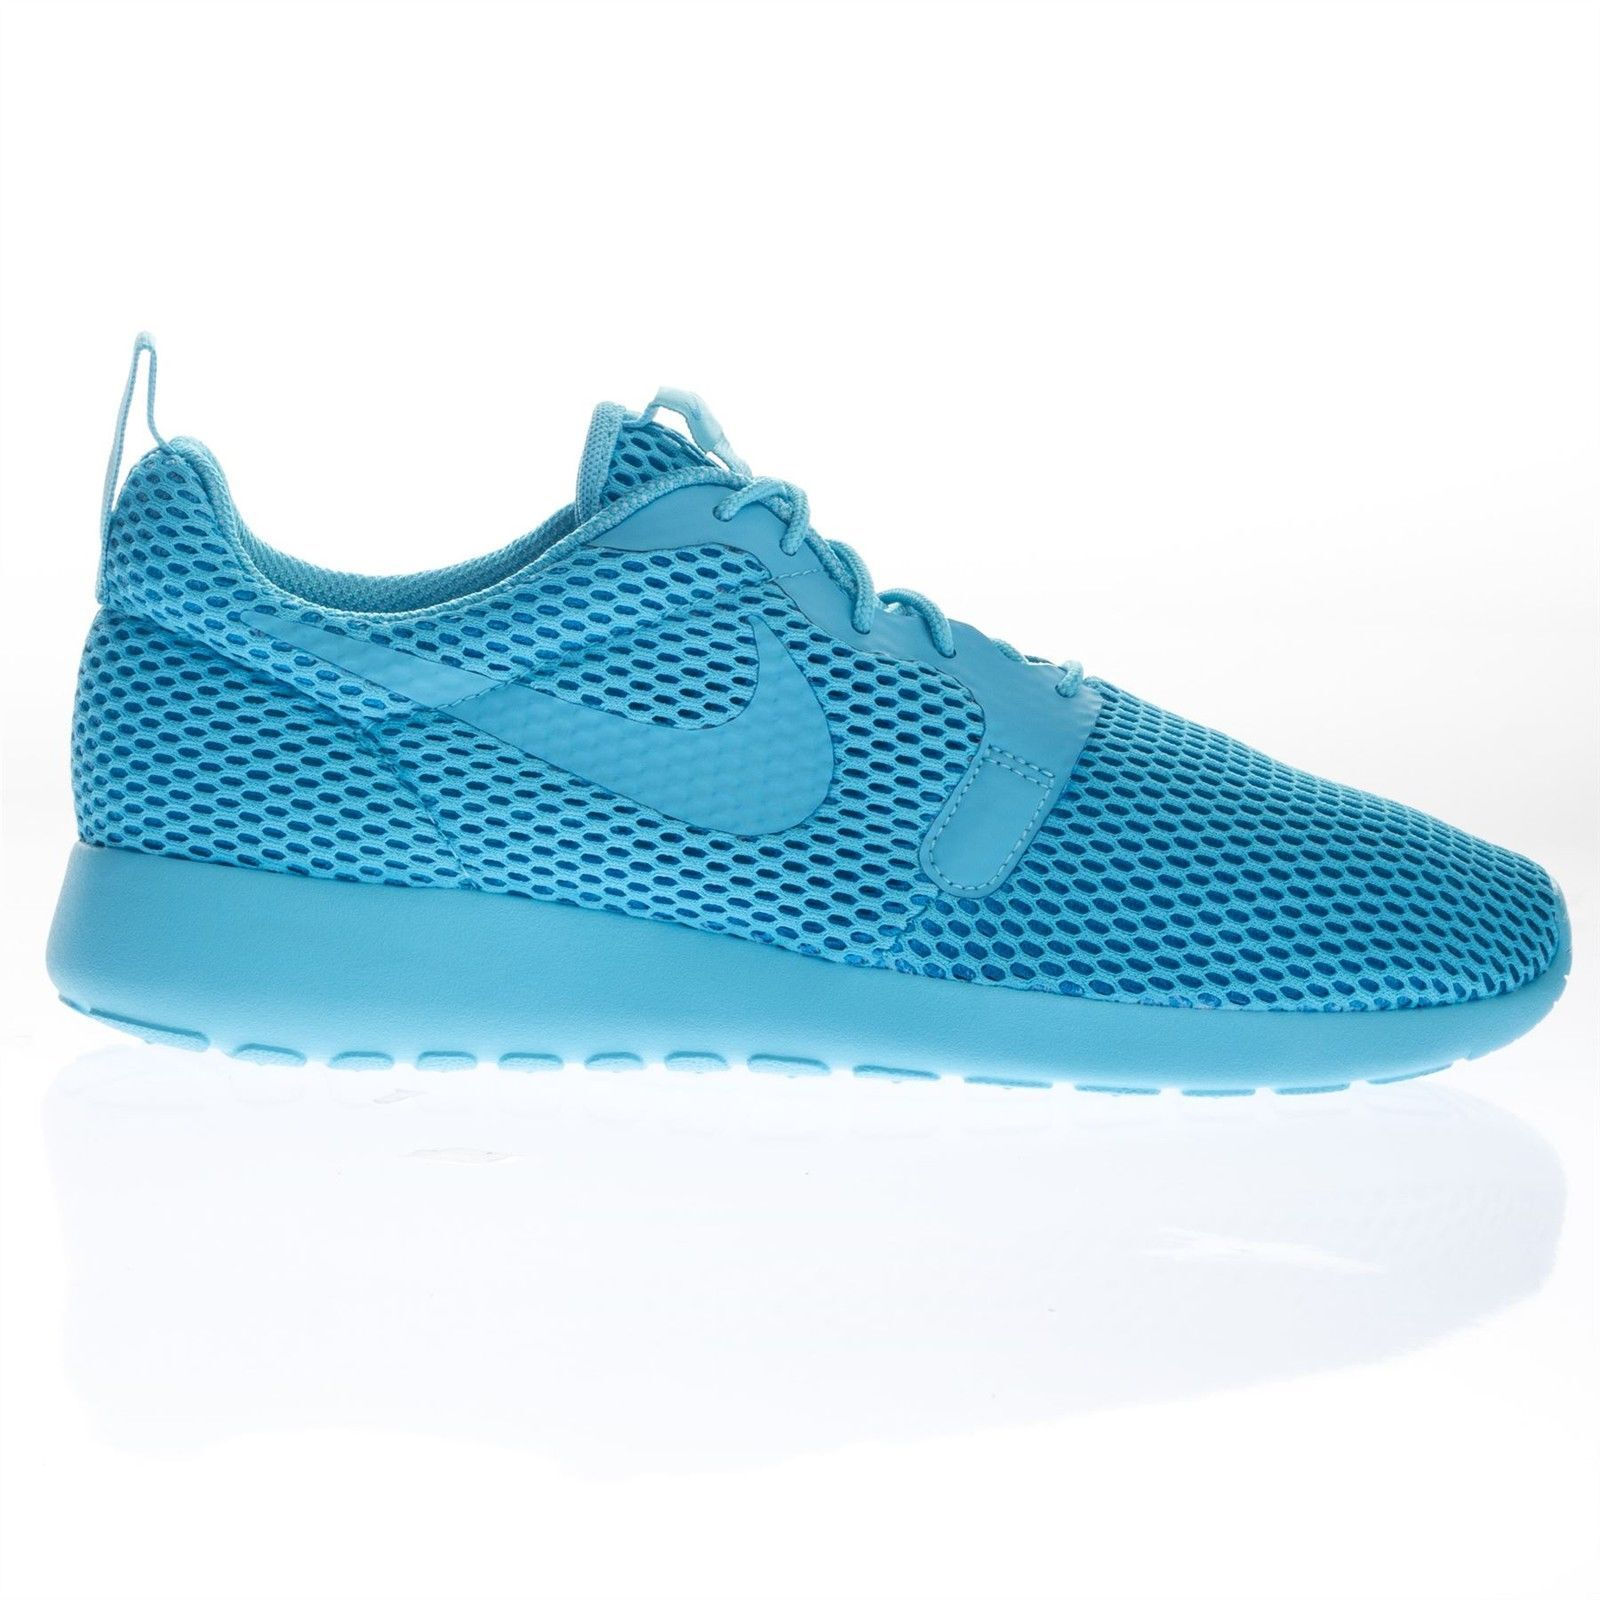 Nike Femme Roshe One Hyperfuse Breathe Gym faible Top Gym Breathe fonctionnement Trainers 3fc32e